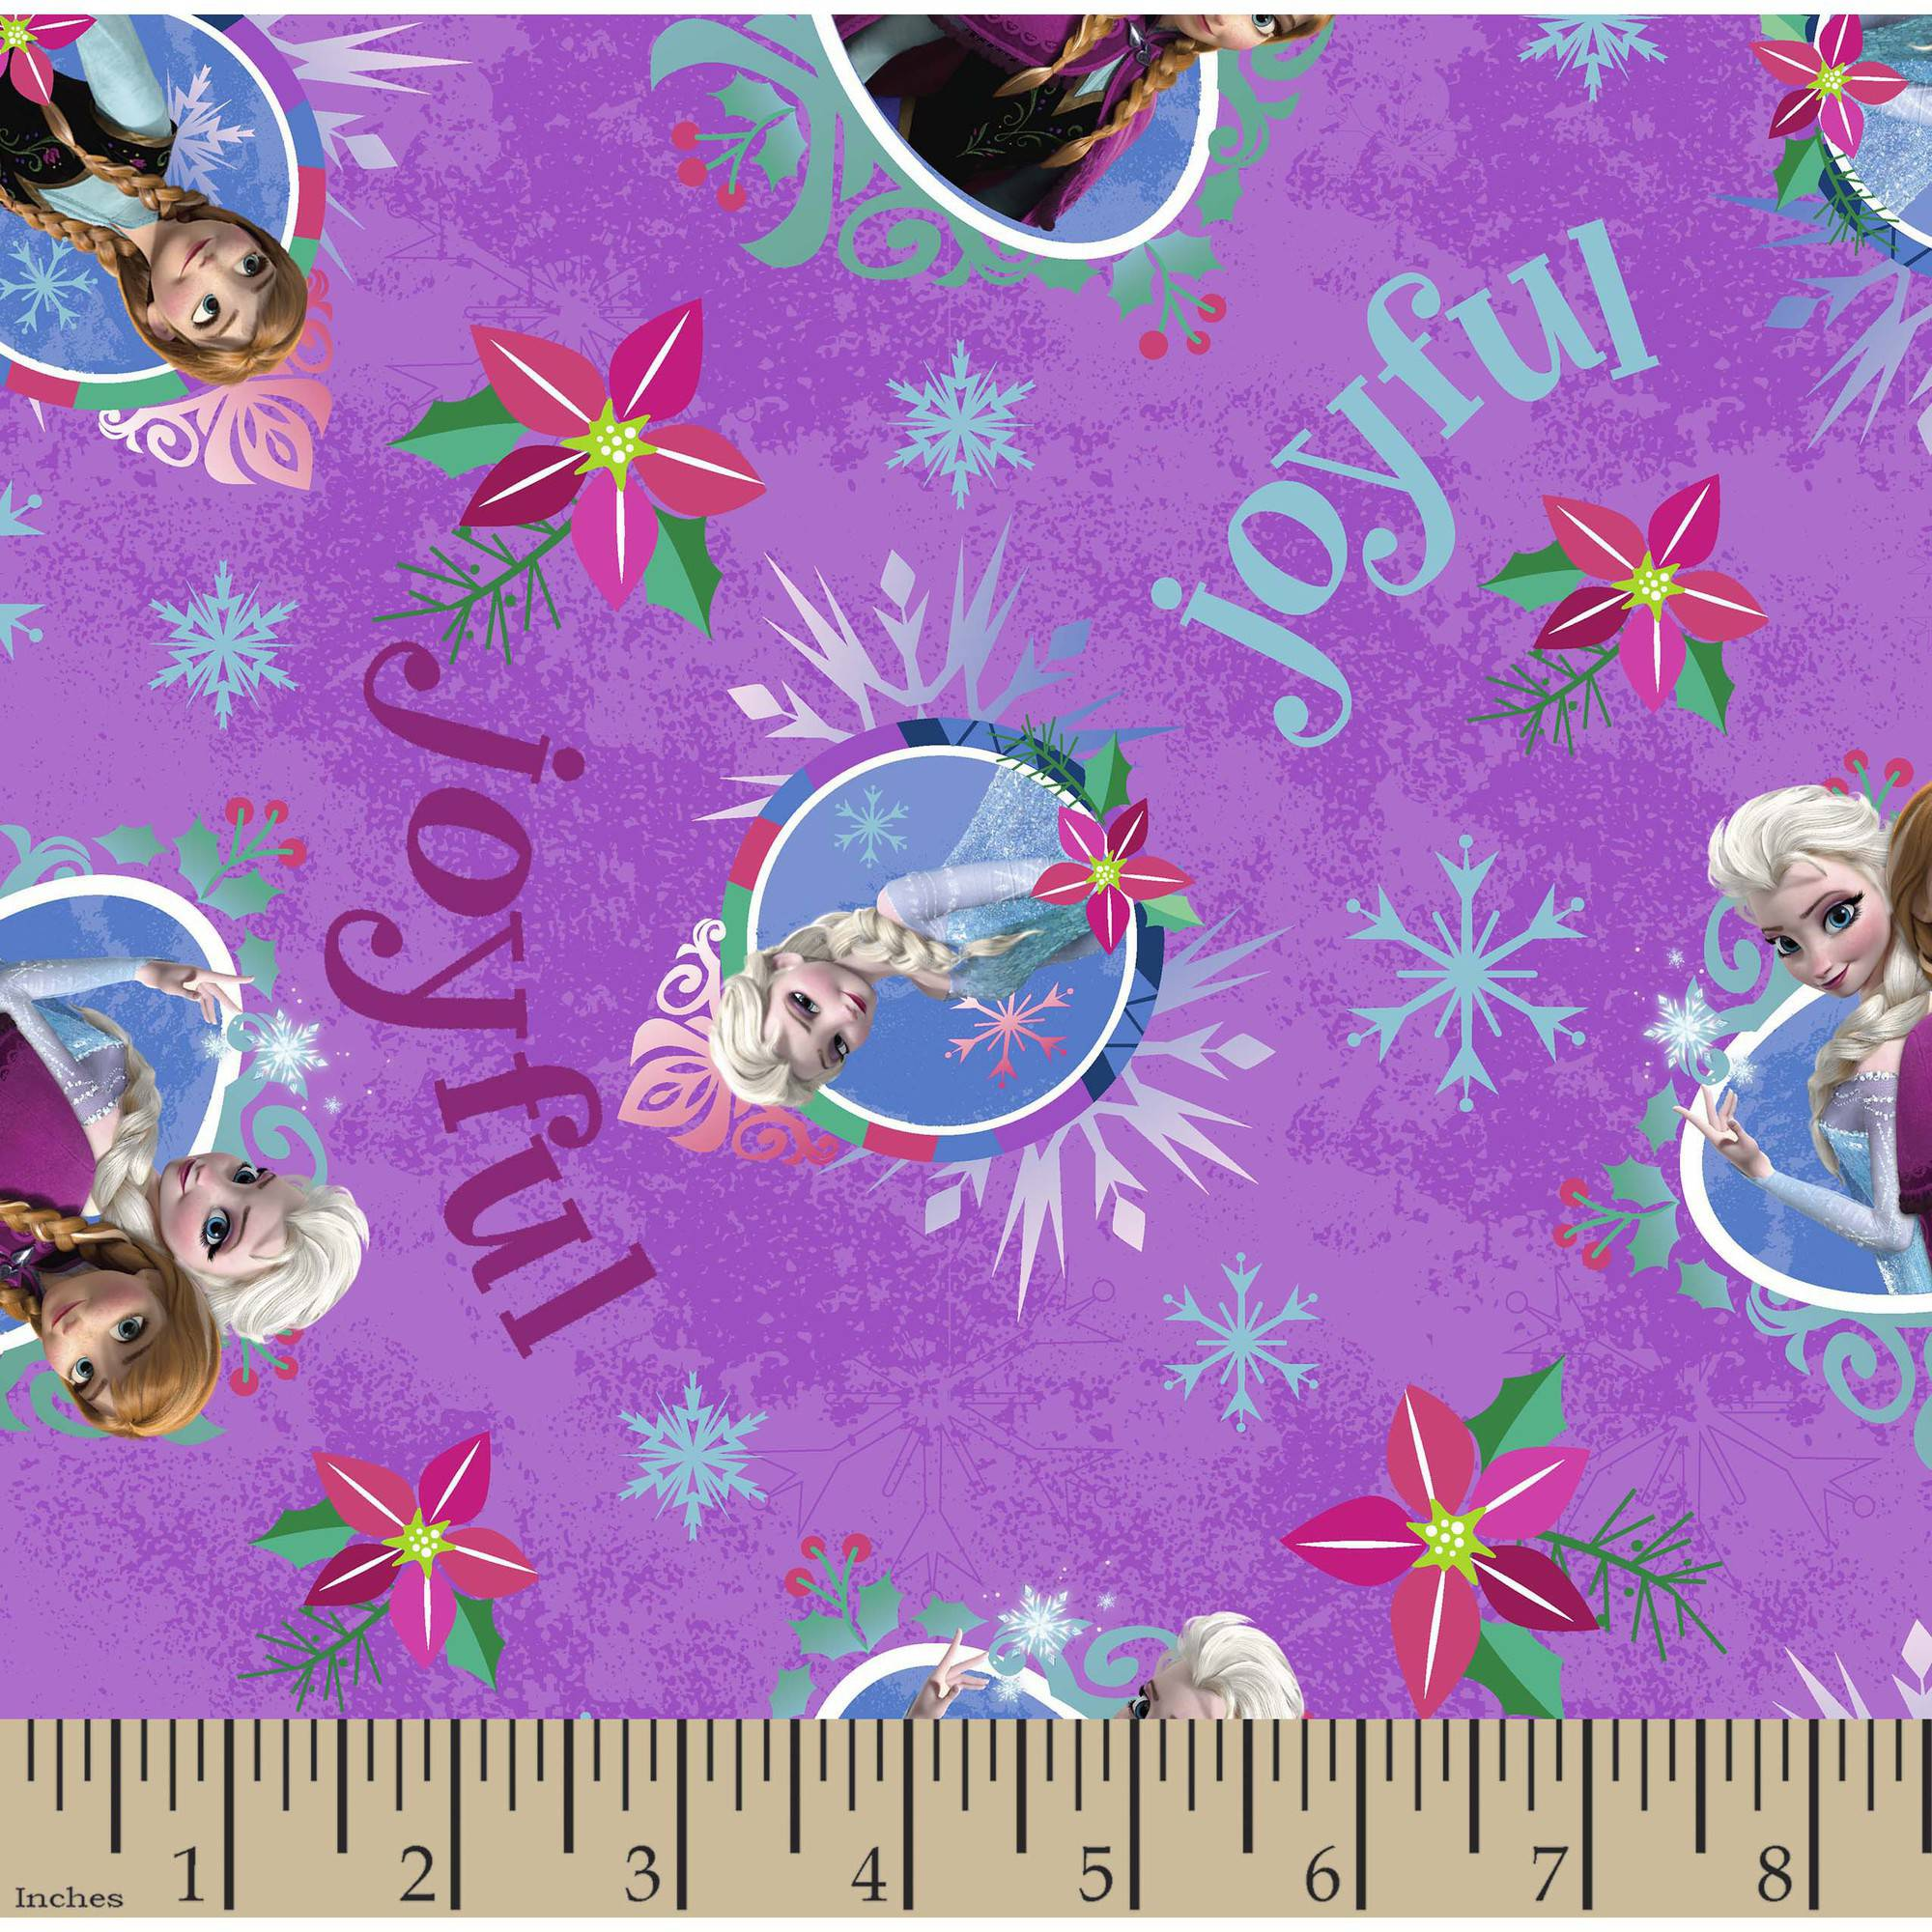 """Christmas Frozen Sisters Merry and Joyful Cotton Fabric By The Yard, Purple, 43/44"""" Wide"""